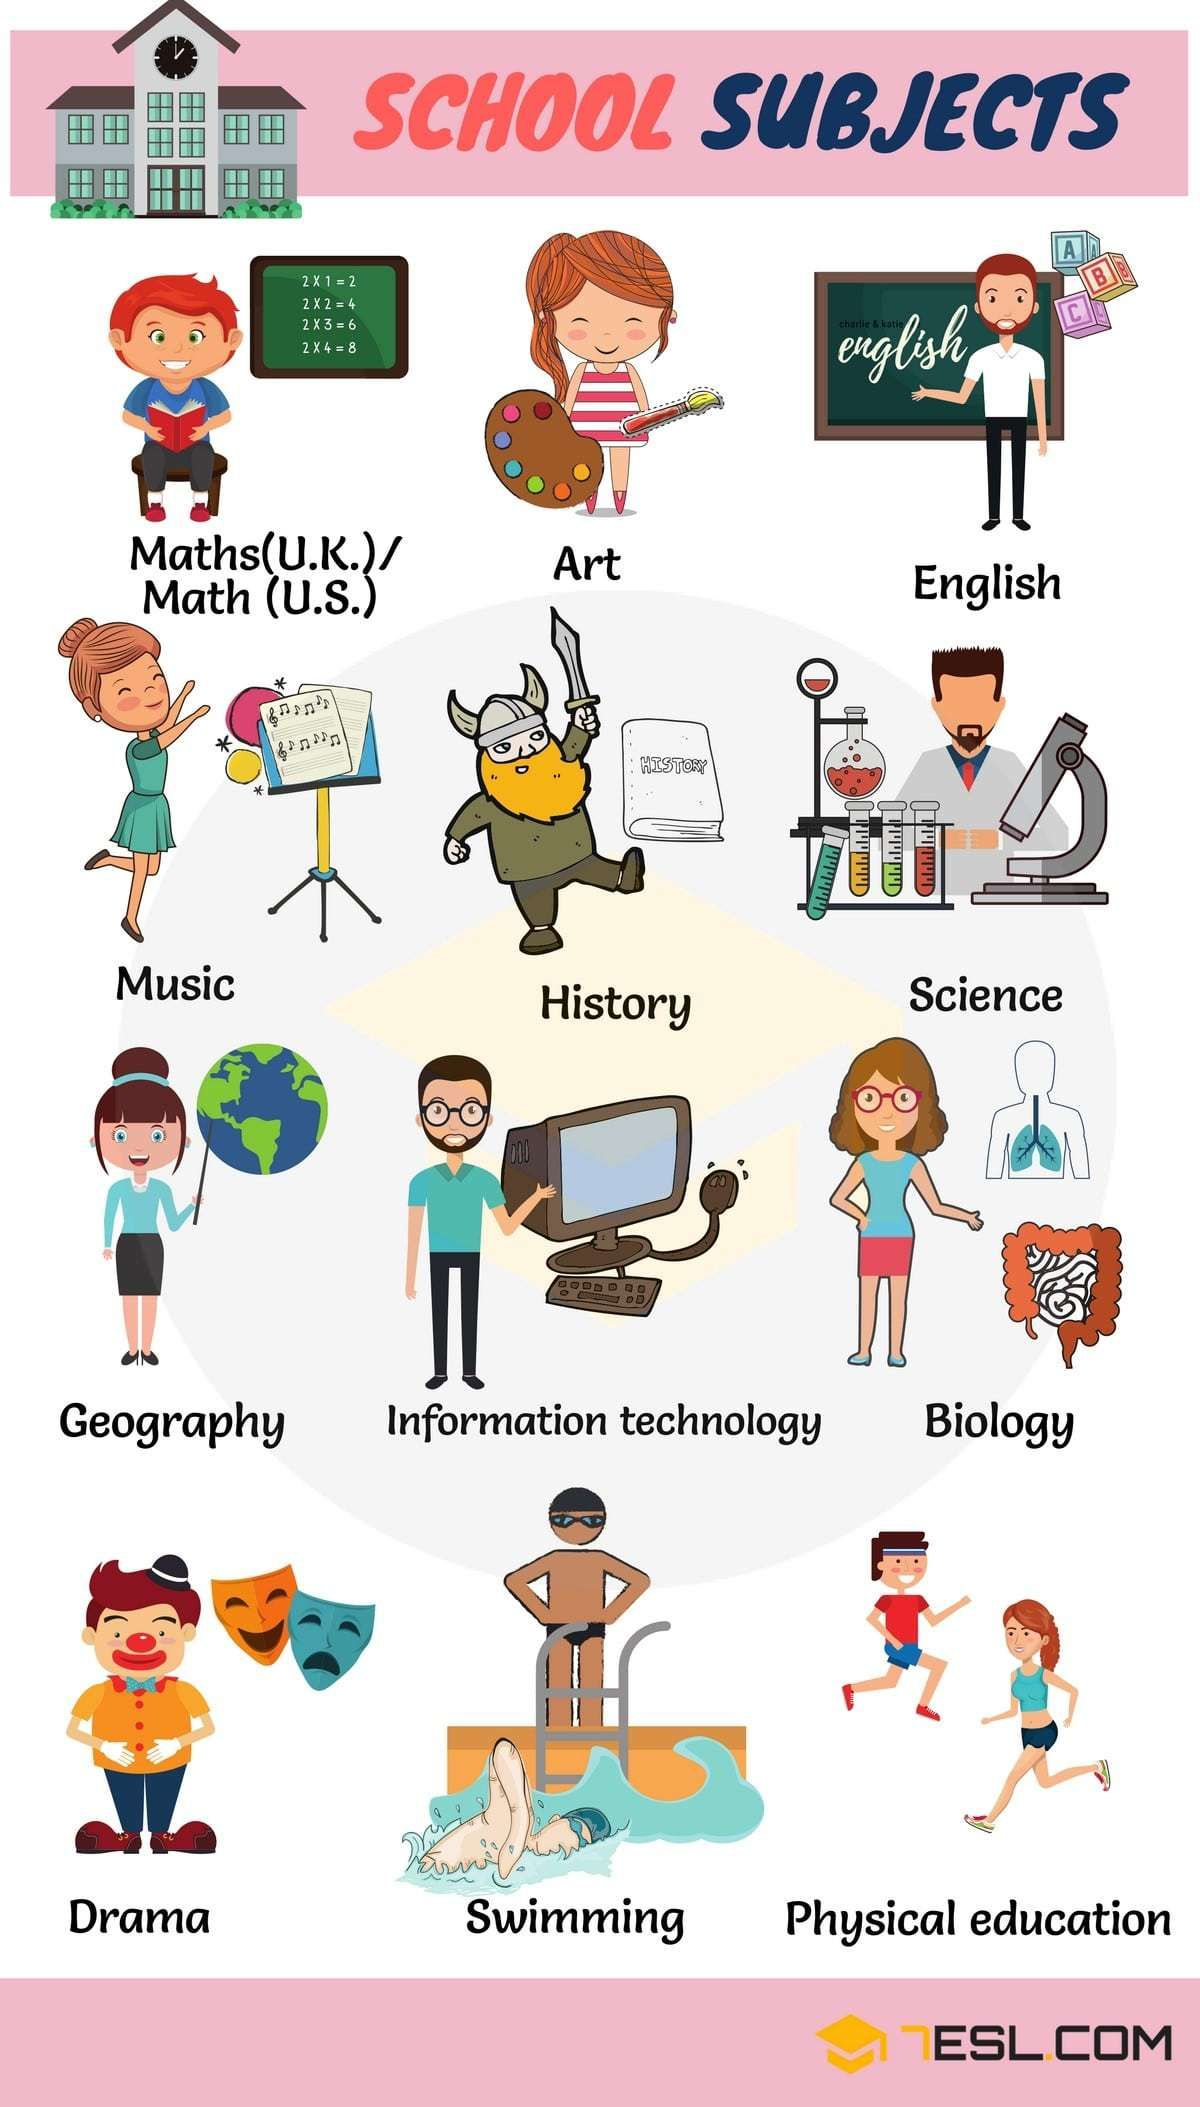 learn english vocabulary for school subjects 英語学習 06 なんでも